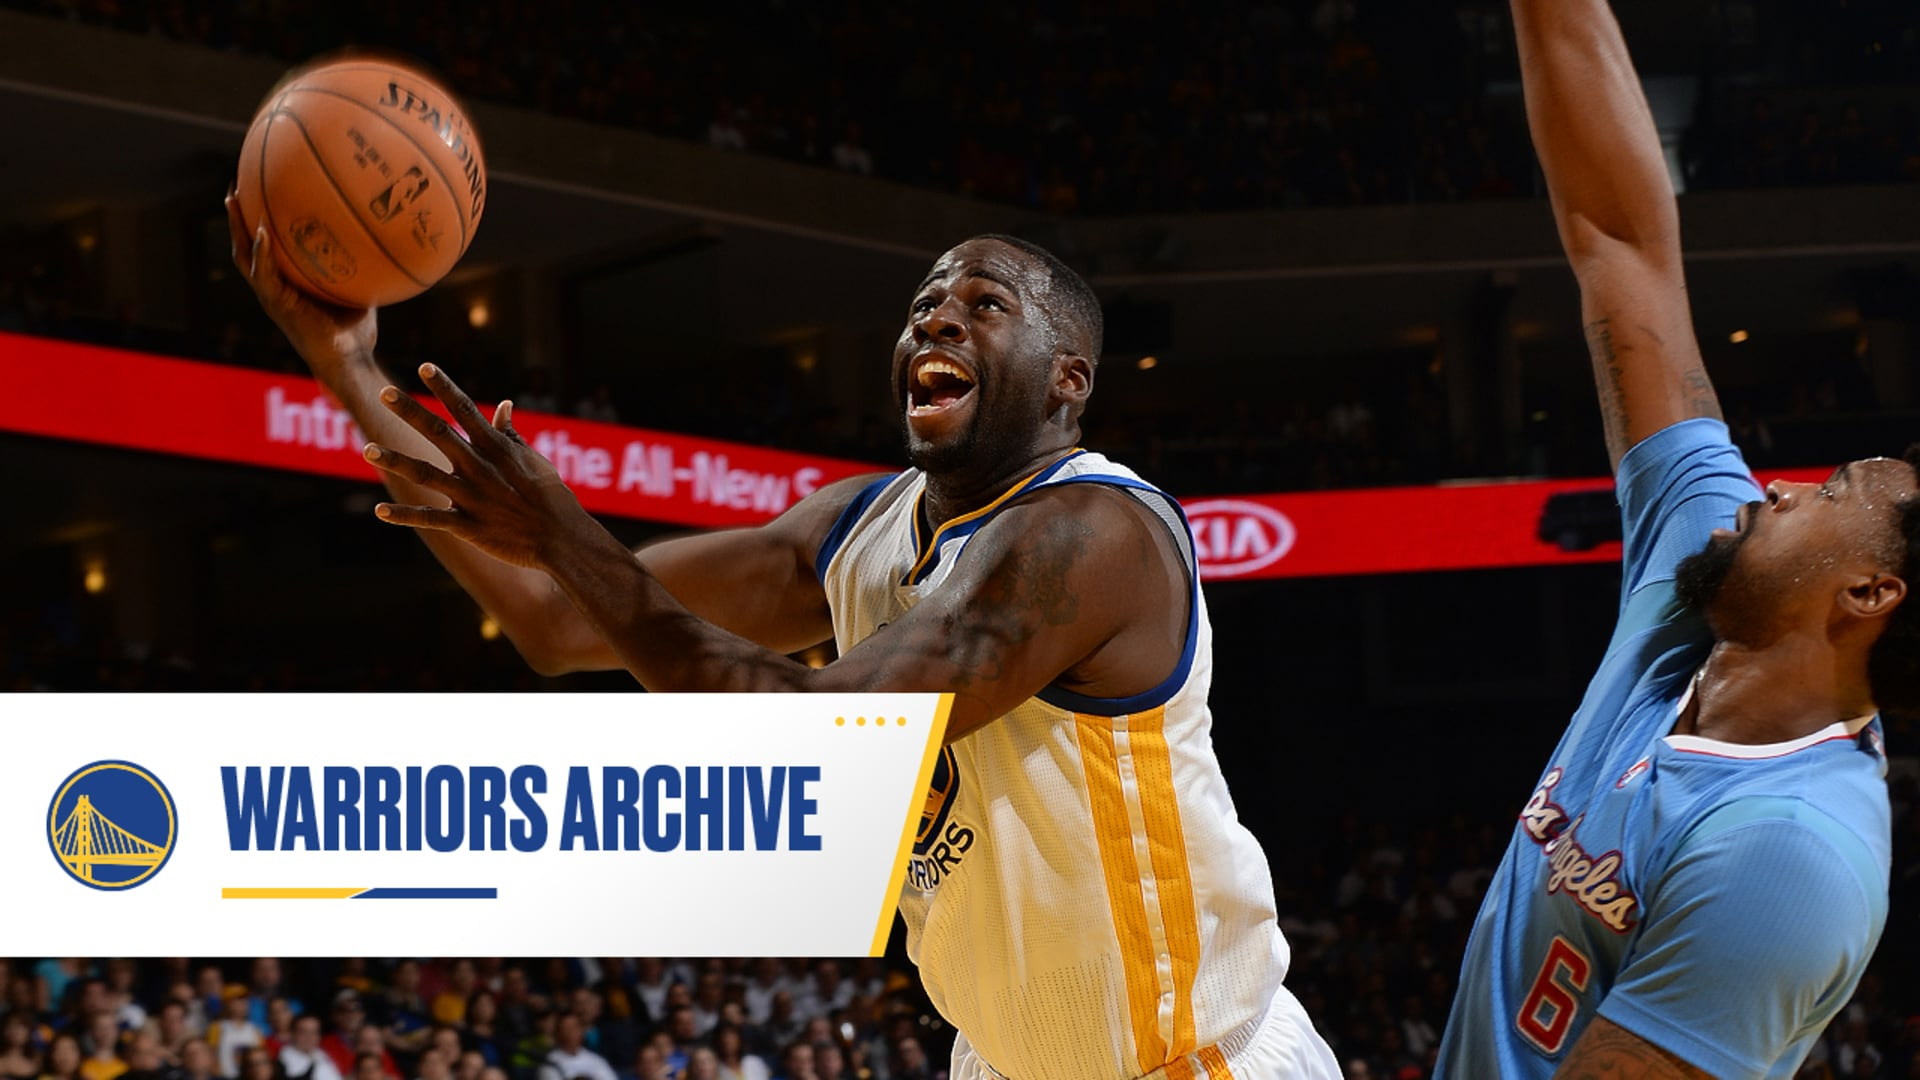 Draymond Green Leads Dubs With 23 Points in Victory Over Clippers